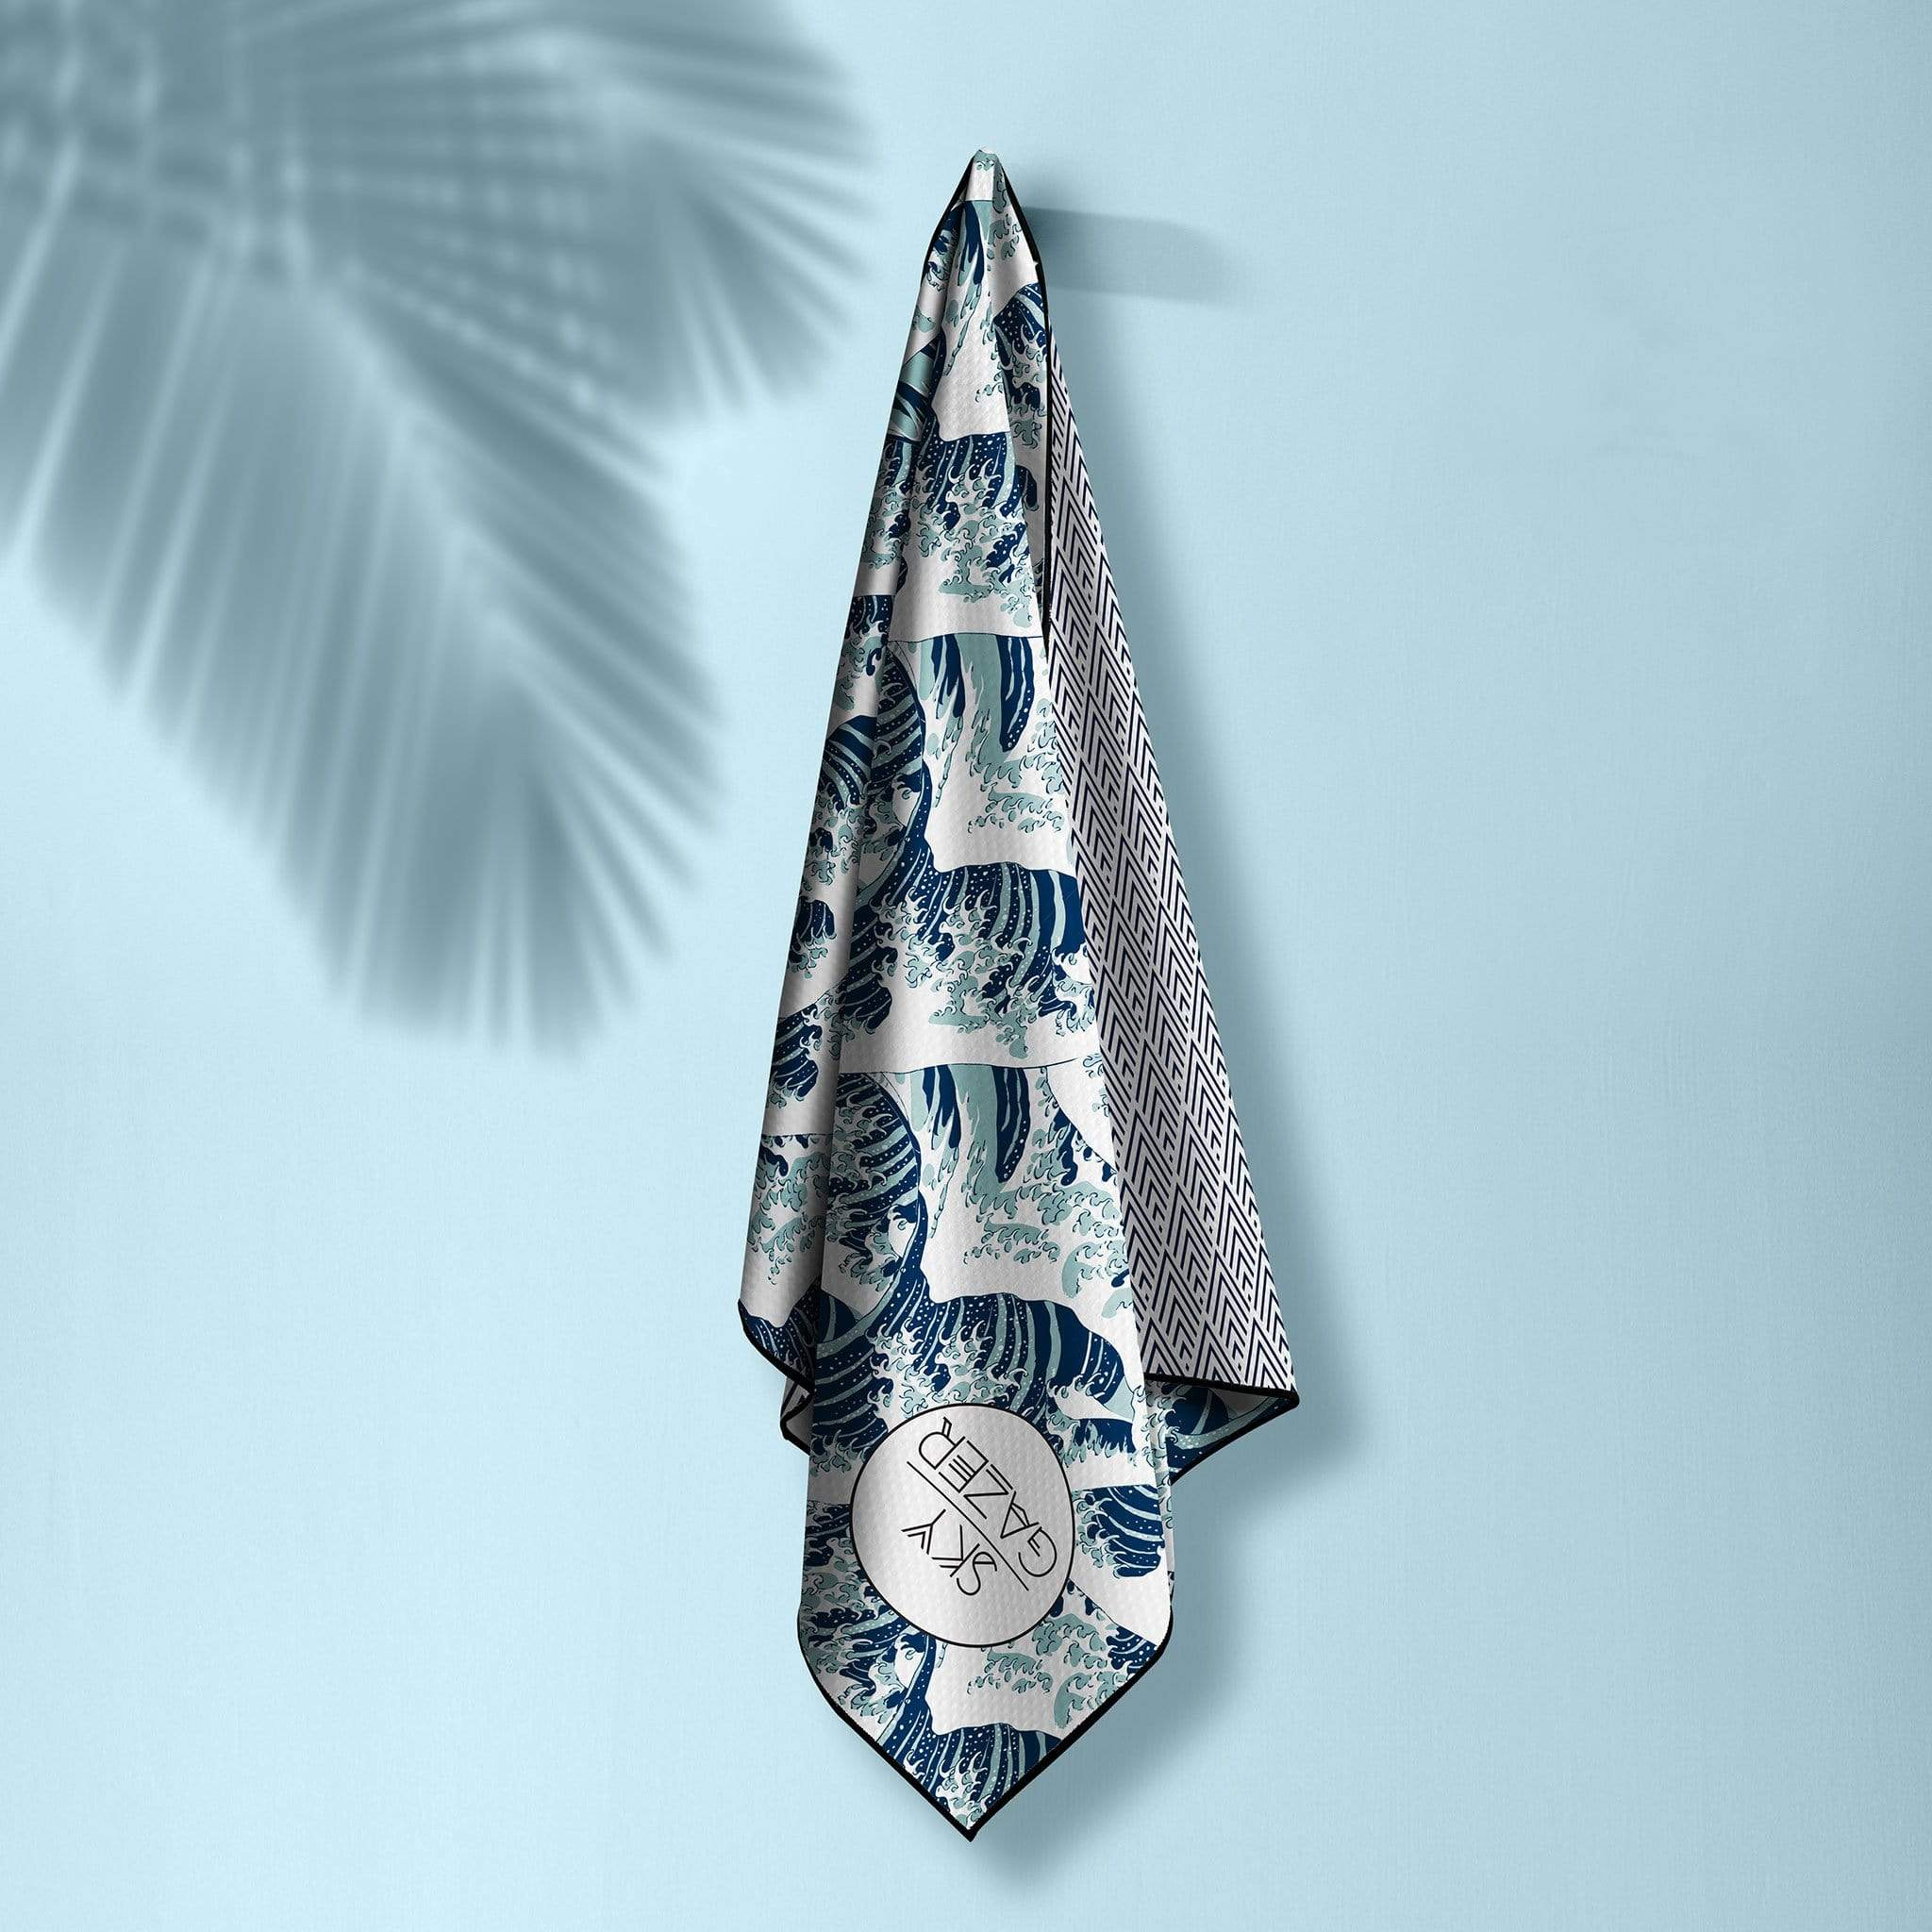 The Mandalay The Ultimate Beach Towel - by Sky Gazer currently available at Rawspice Boutique.